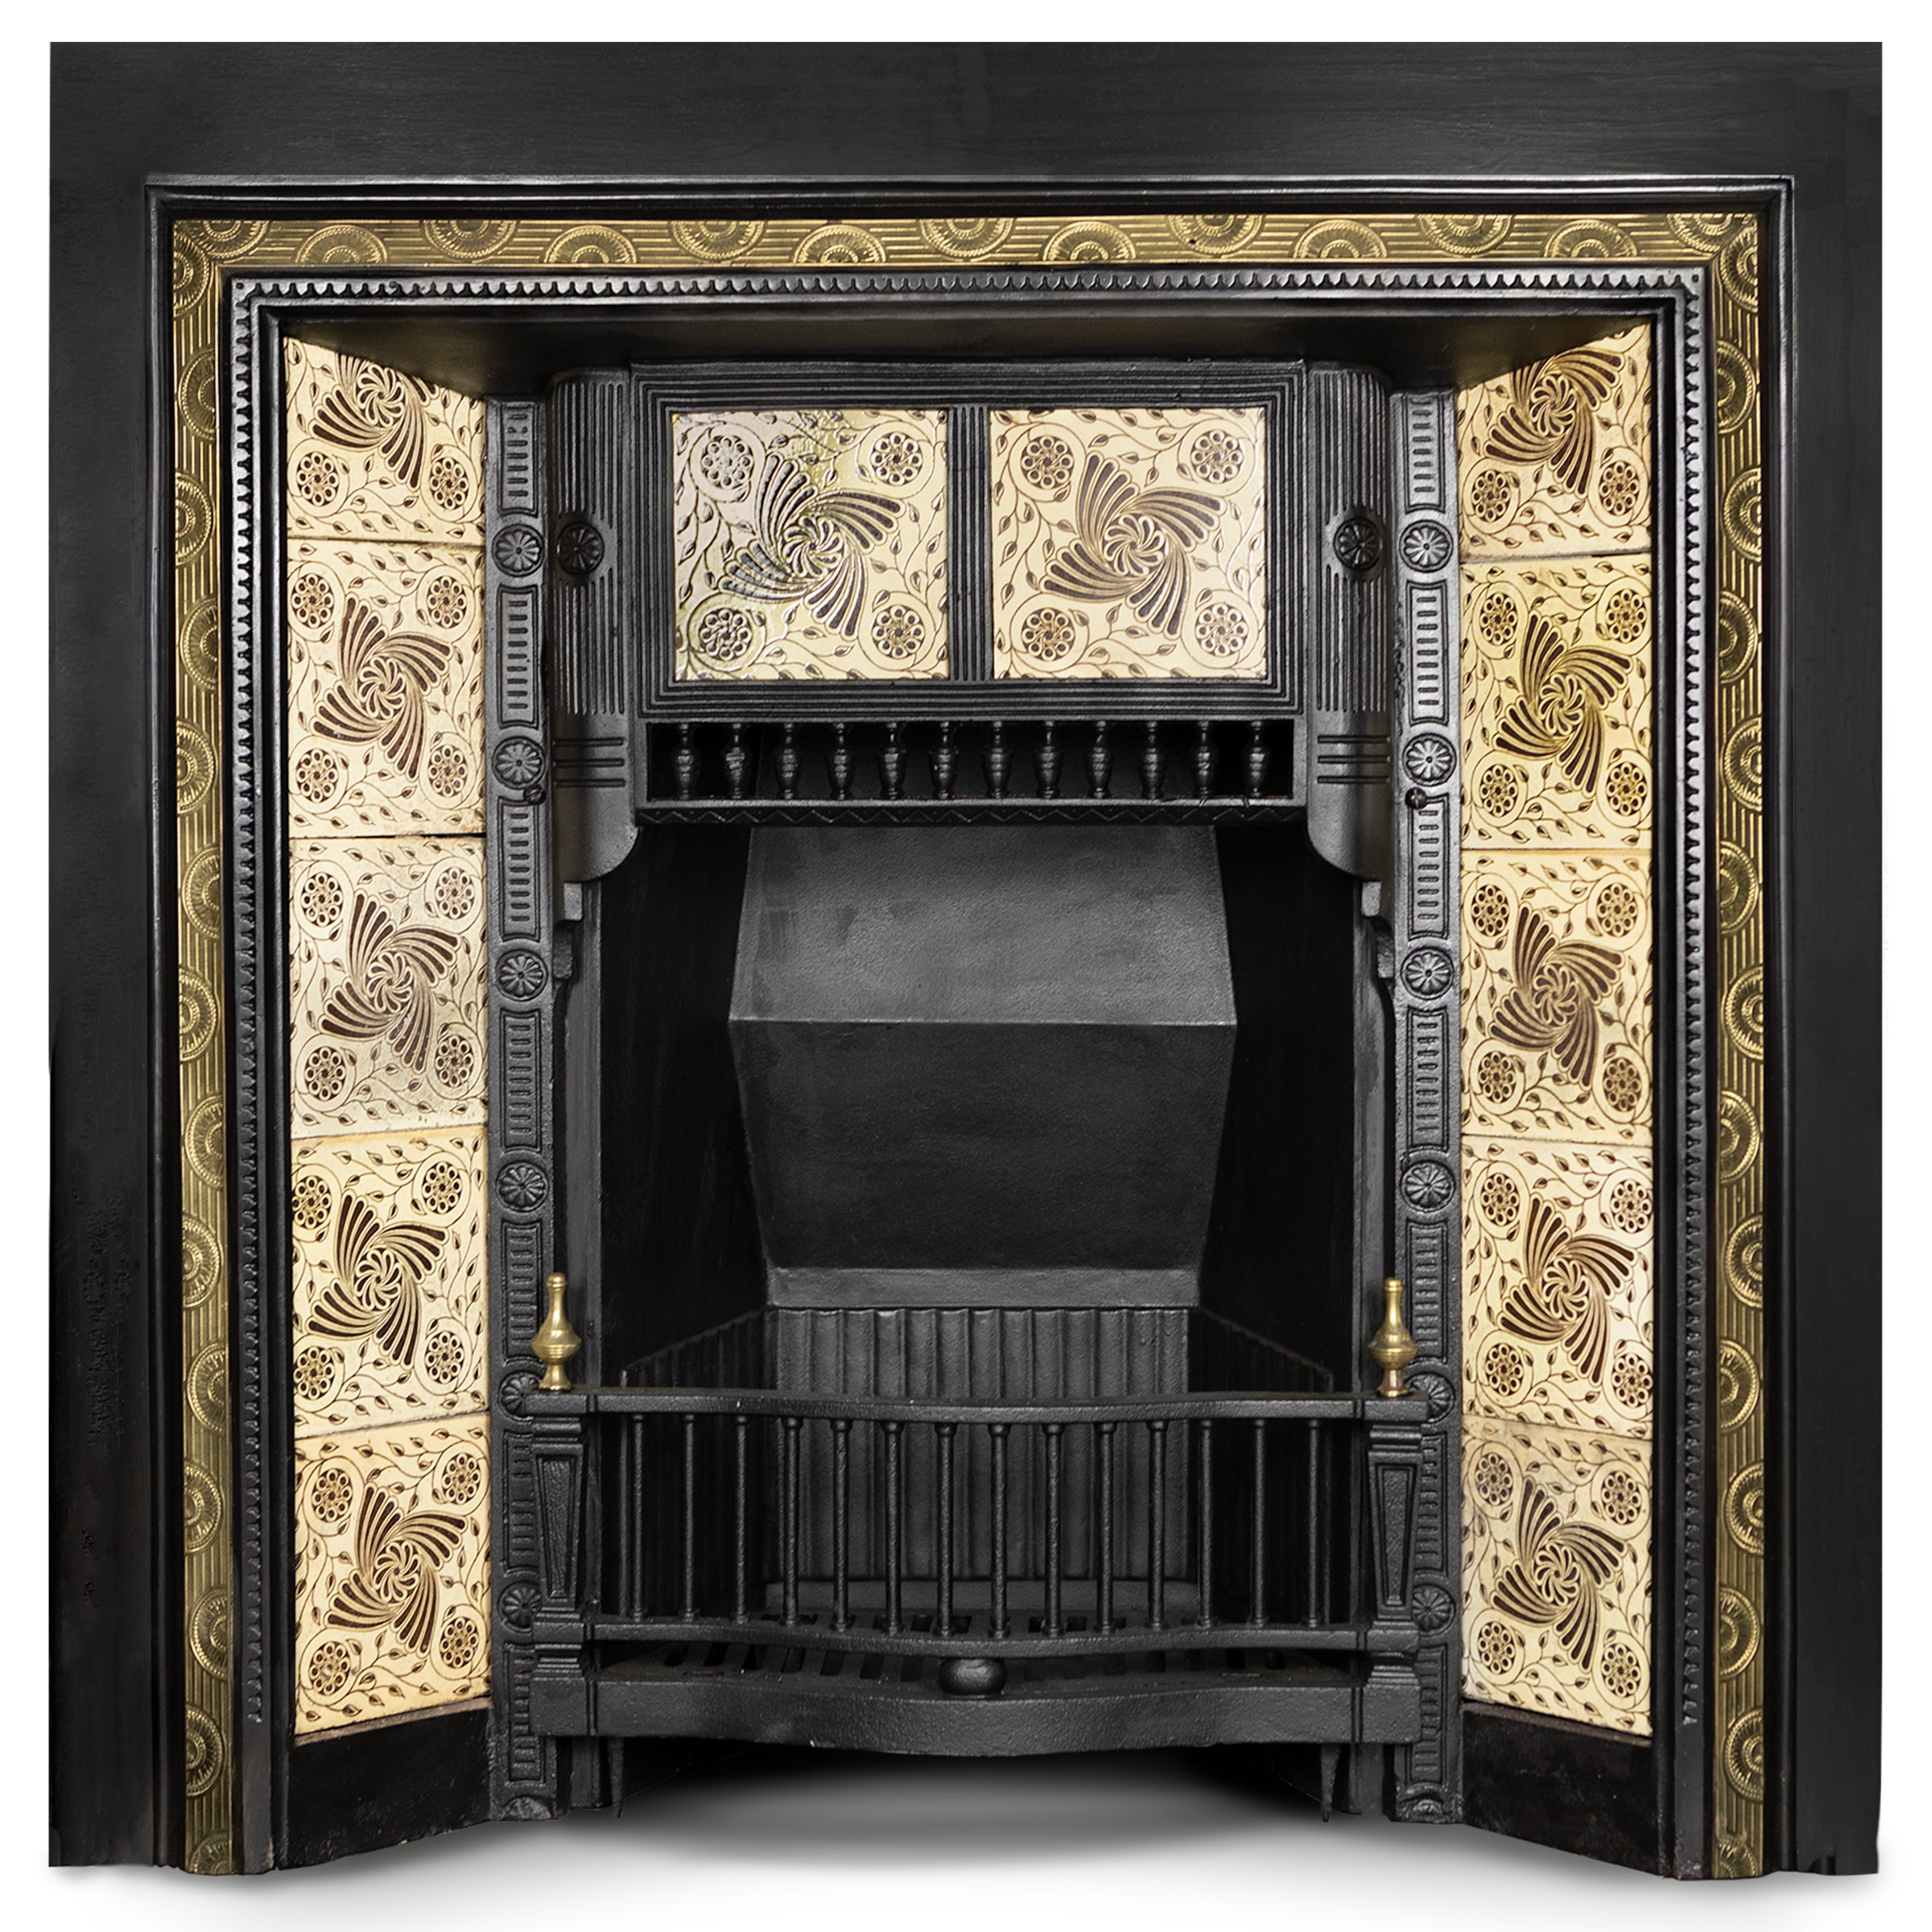 Antique Tiled Fireplace Insert with Decorative Brass Border